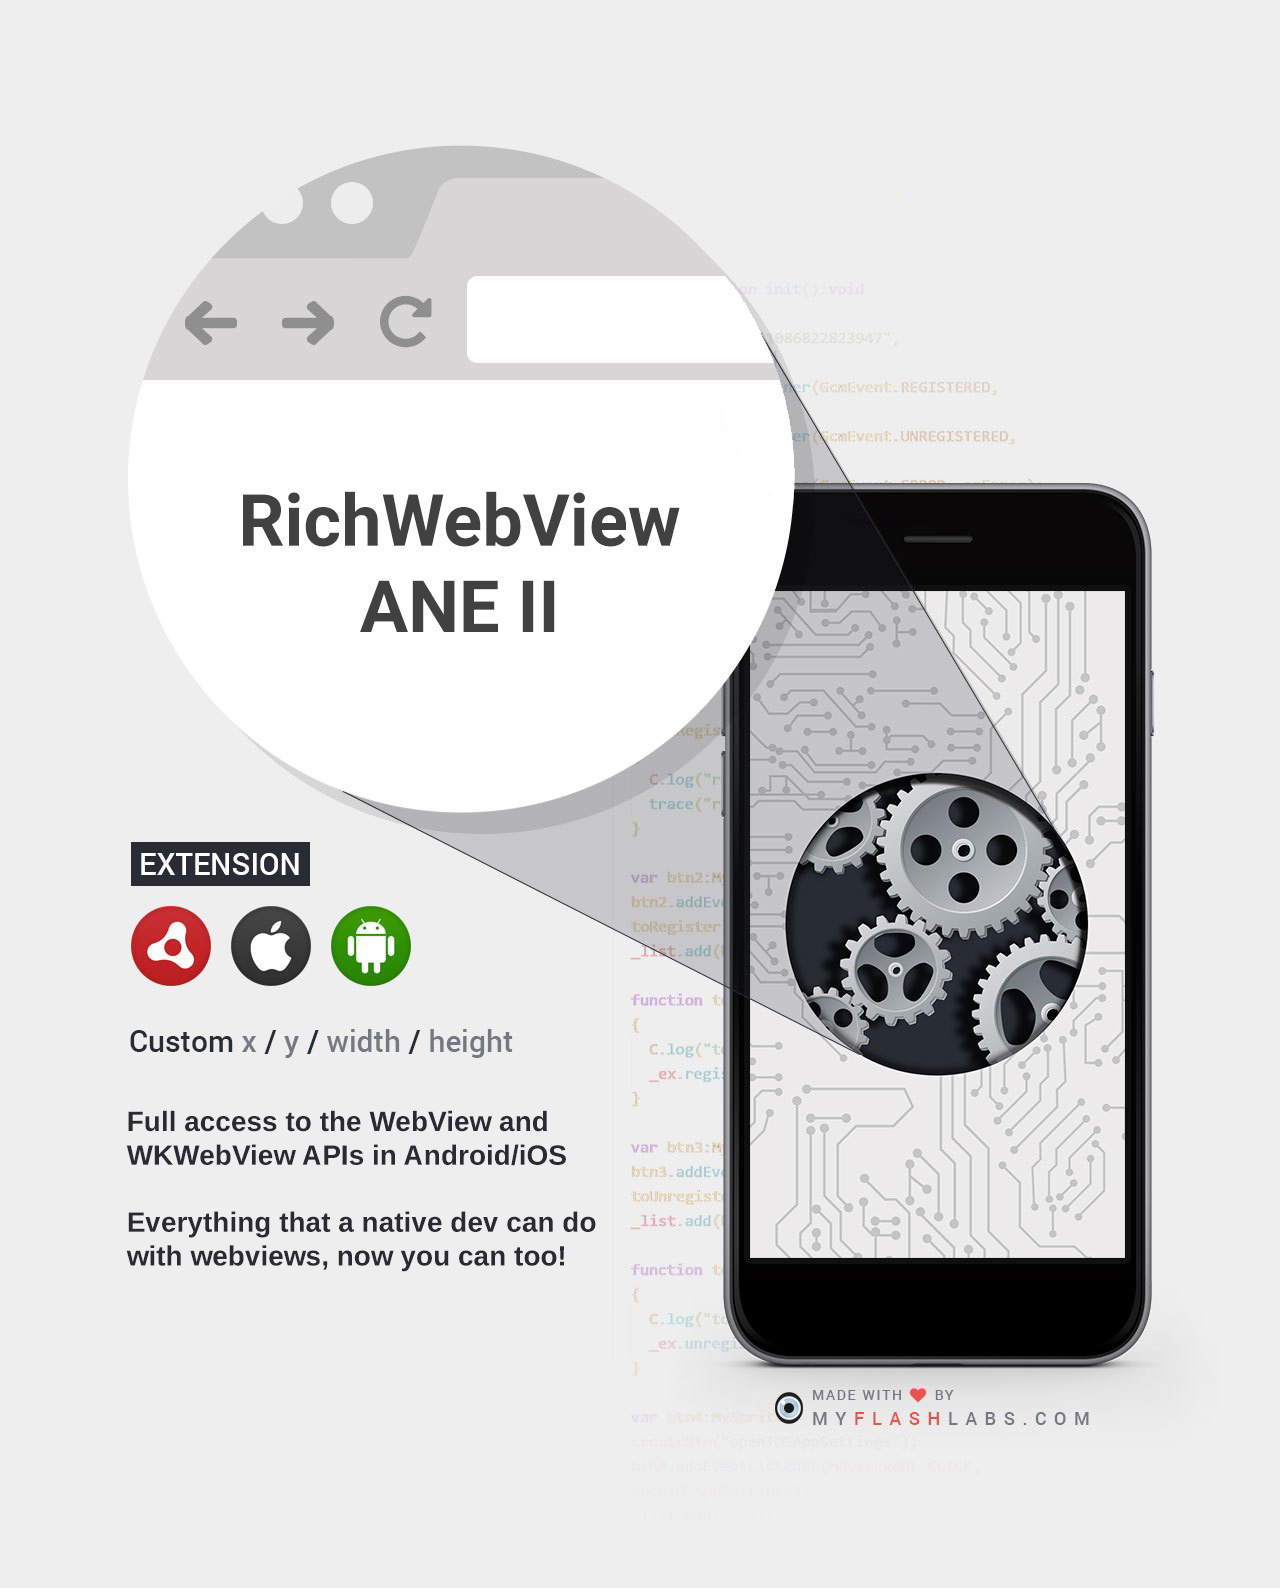 RichWebview ANE II (Android+iOS) - MyFlashLabs